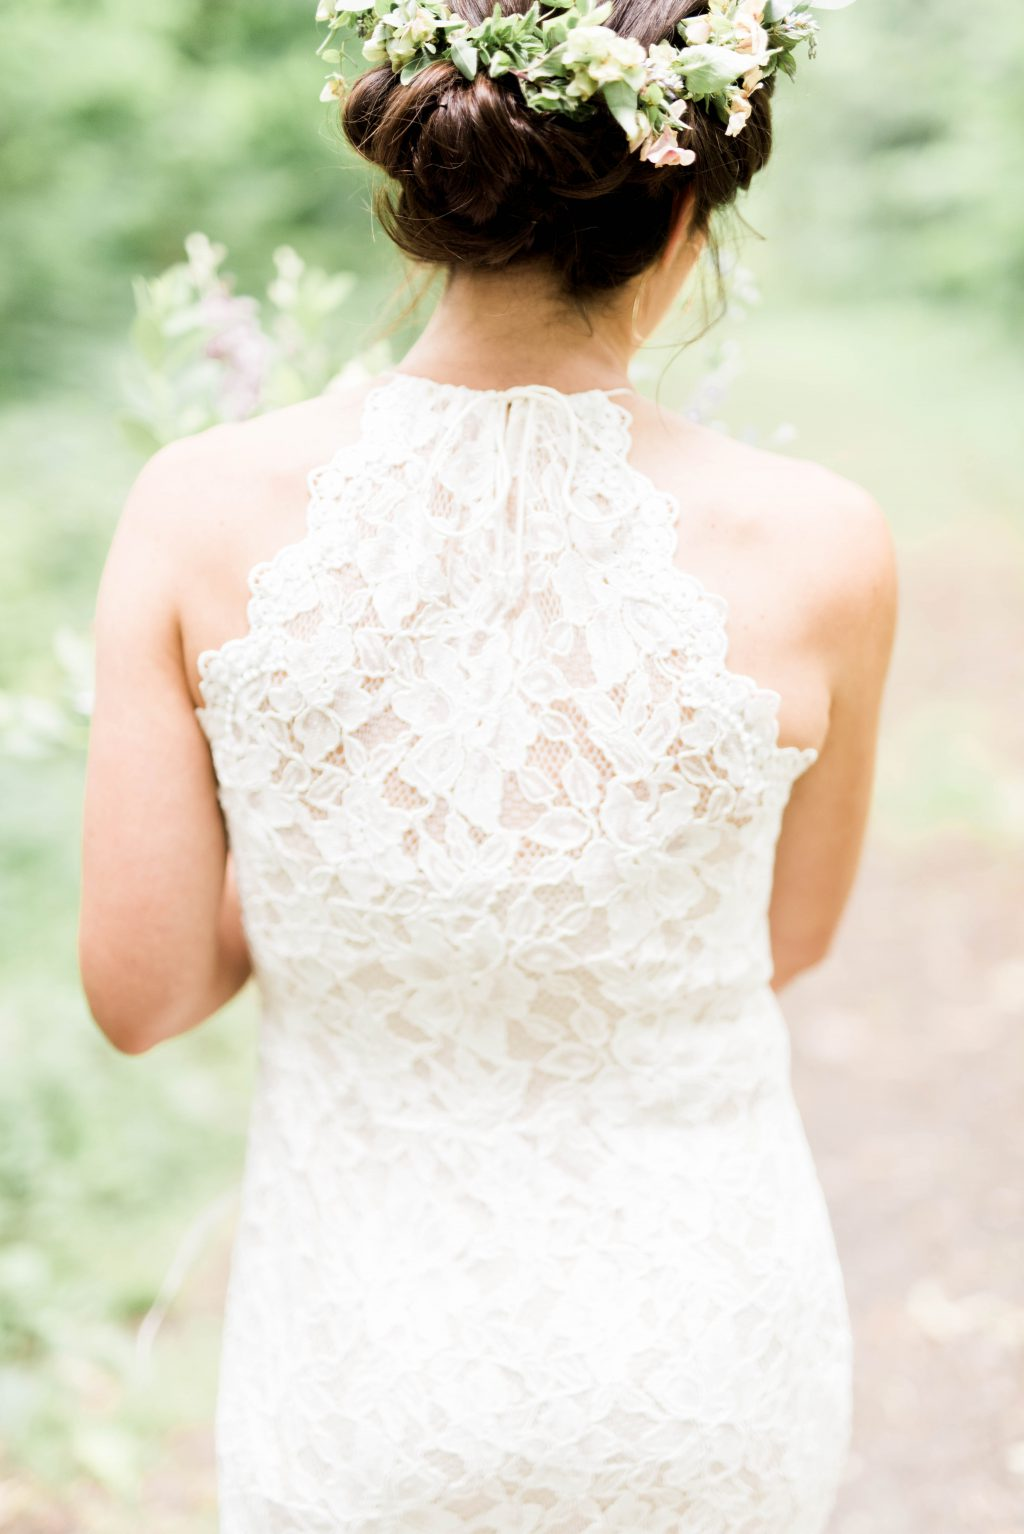 awbury-arboretum-wedding-DIY-boho-summer-haley-richter-photography-083